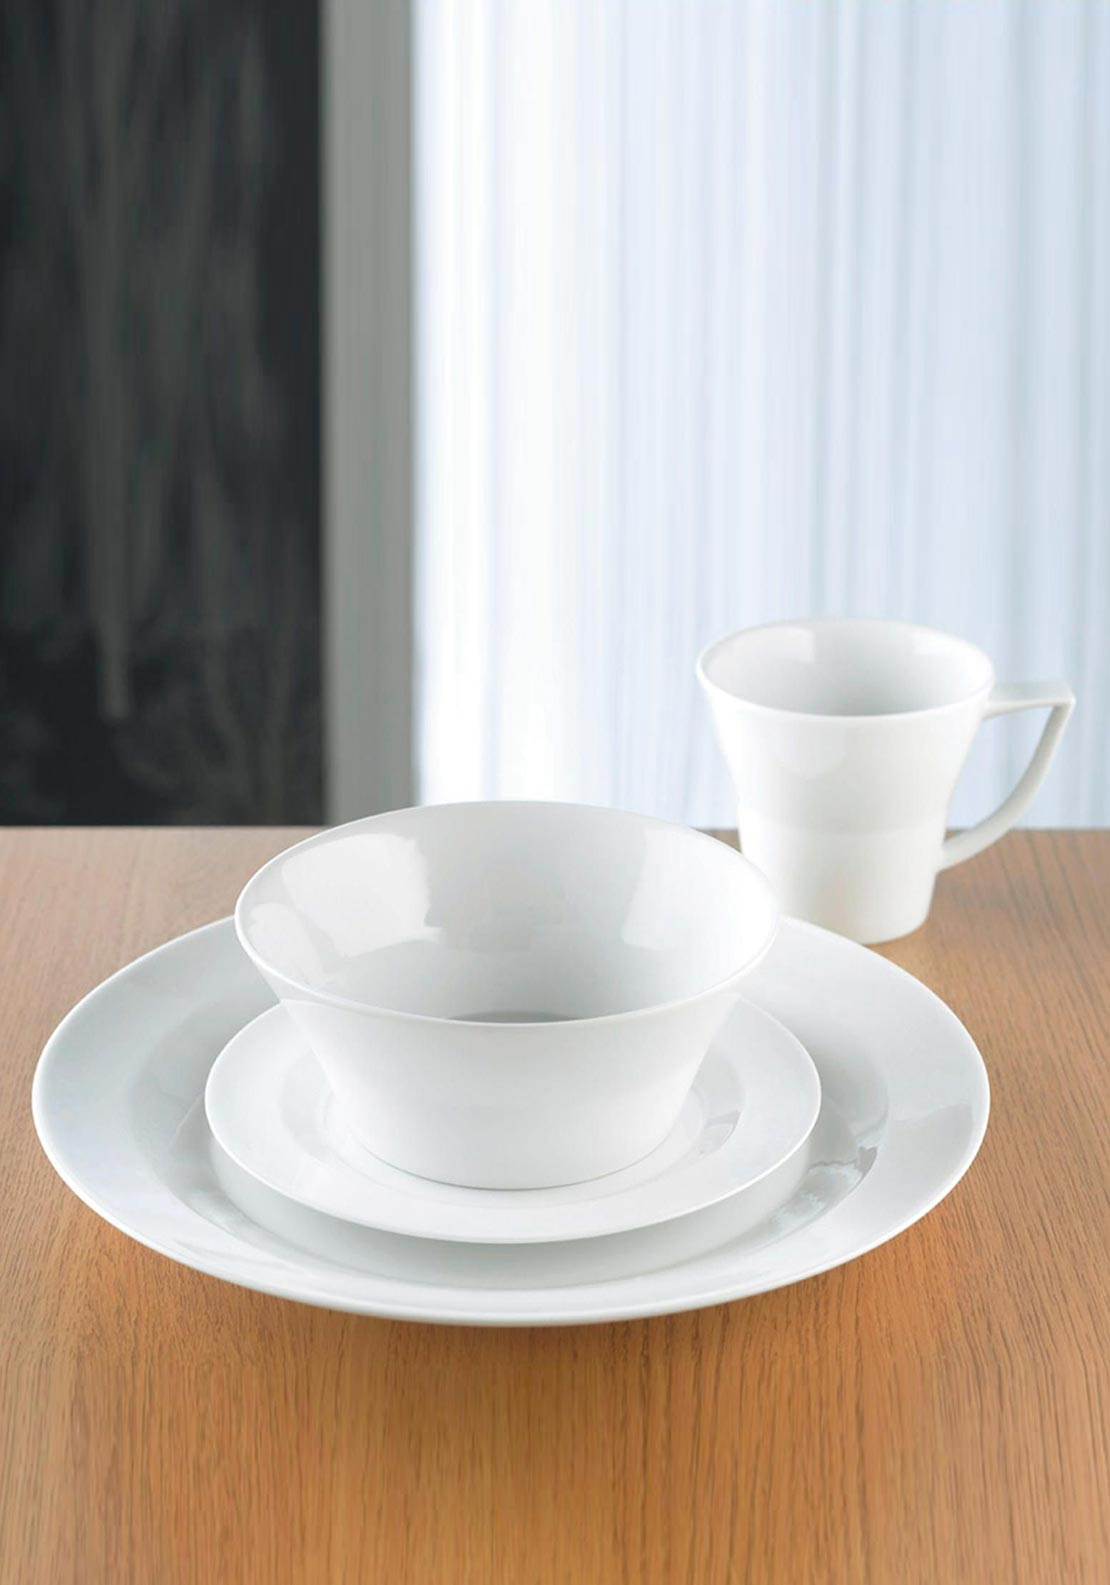 Denby James Martin 4 Piece Mug Set, White